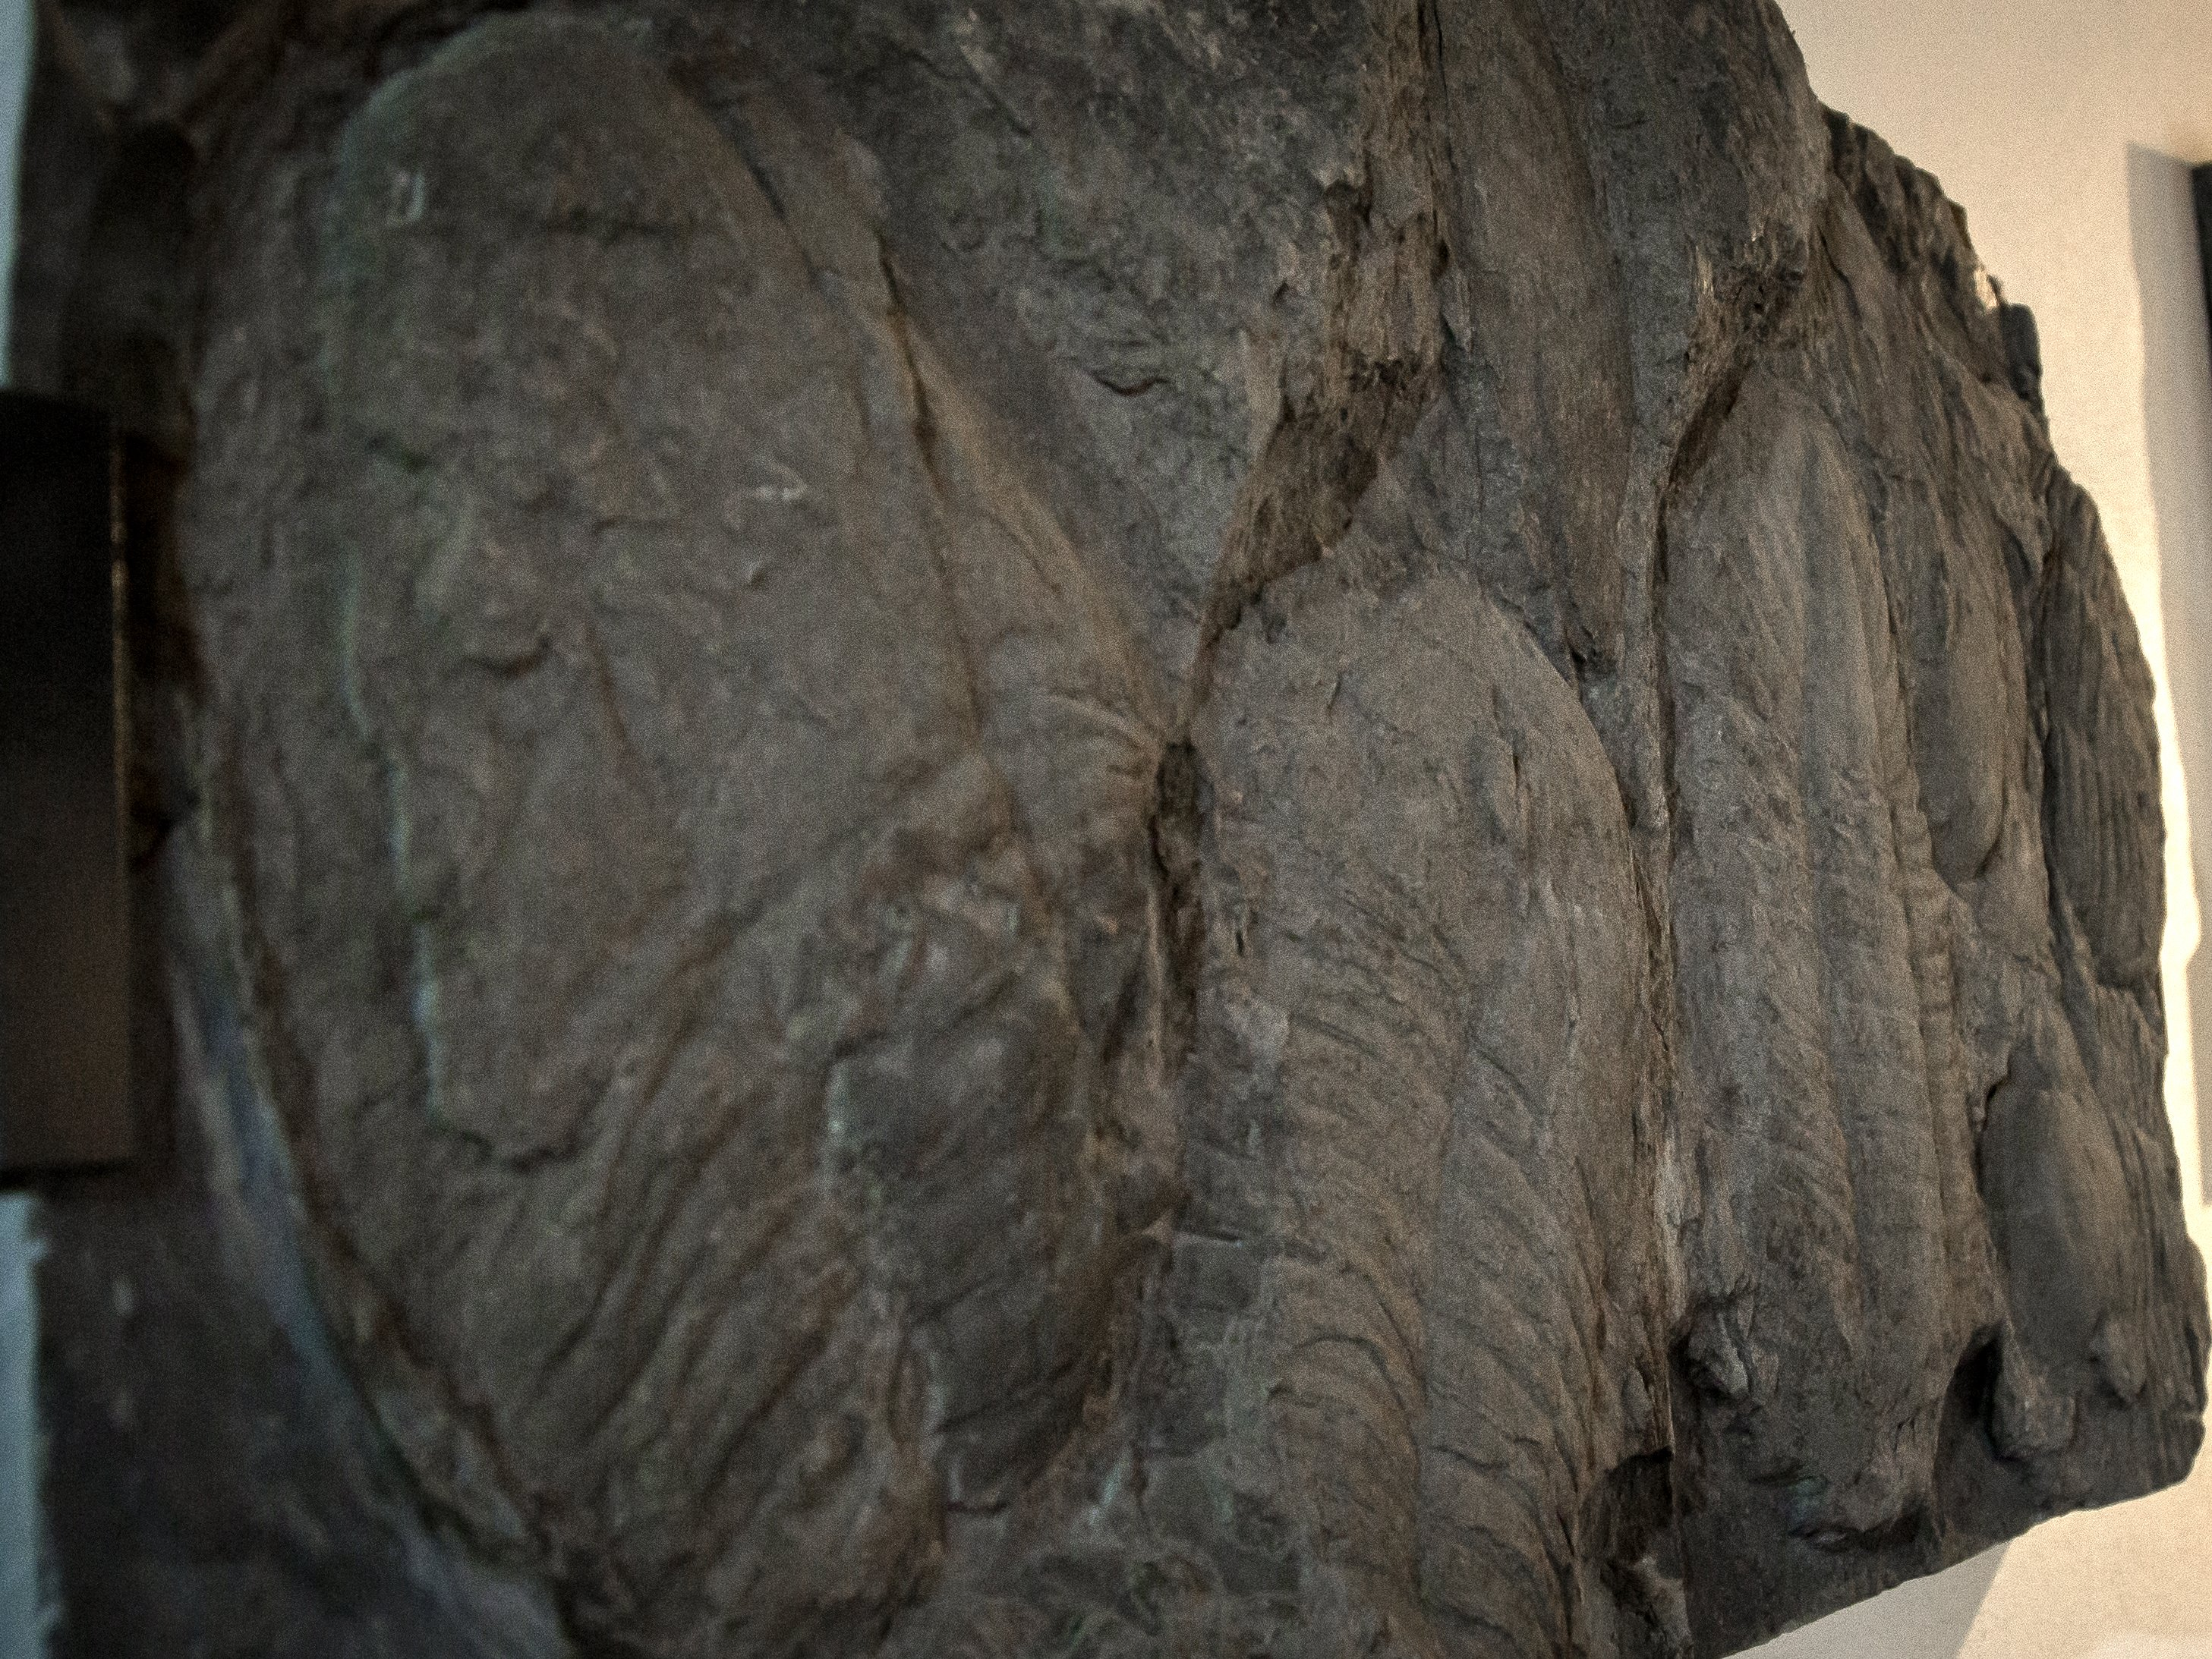 Fossils collection of the Geological Interpretative Center